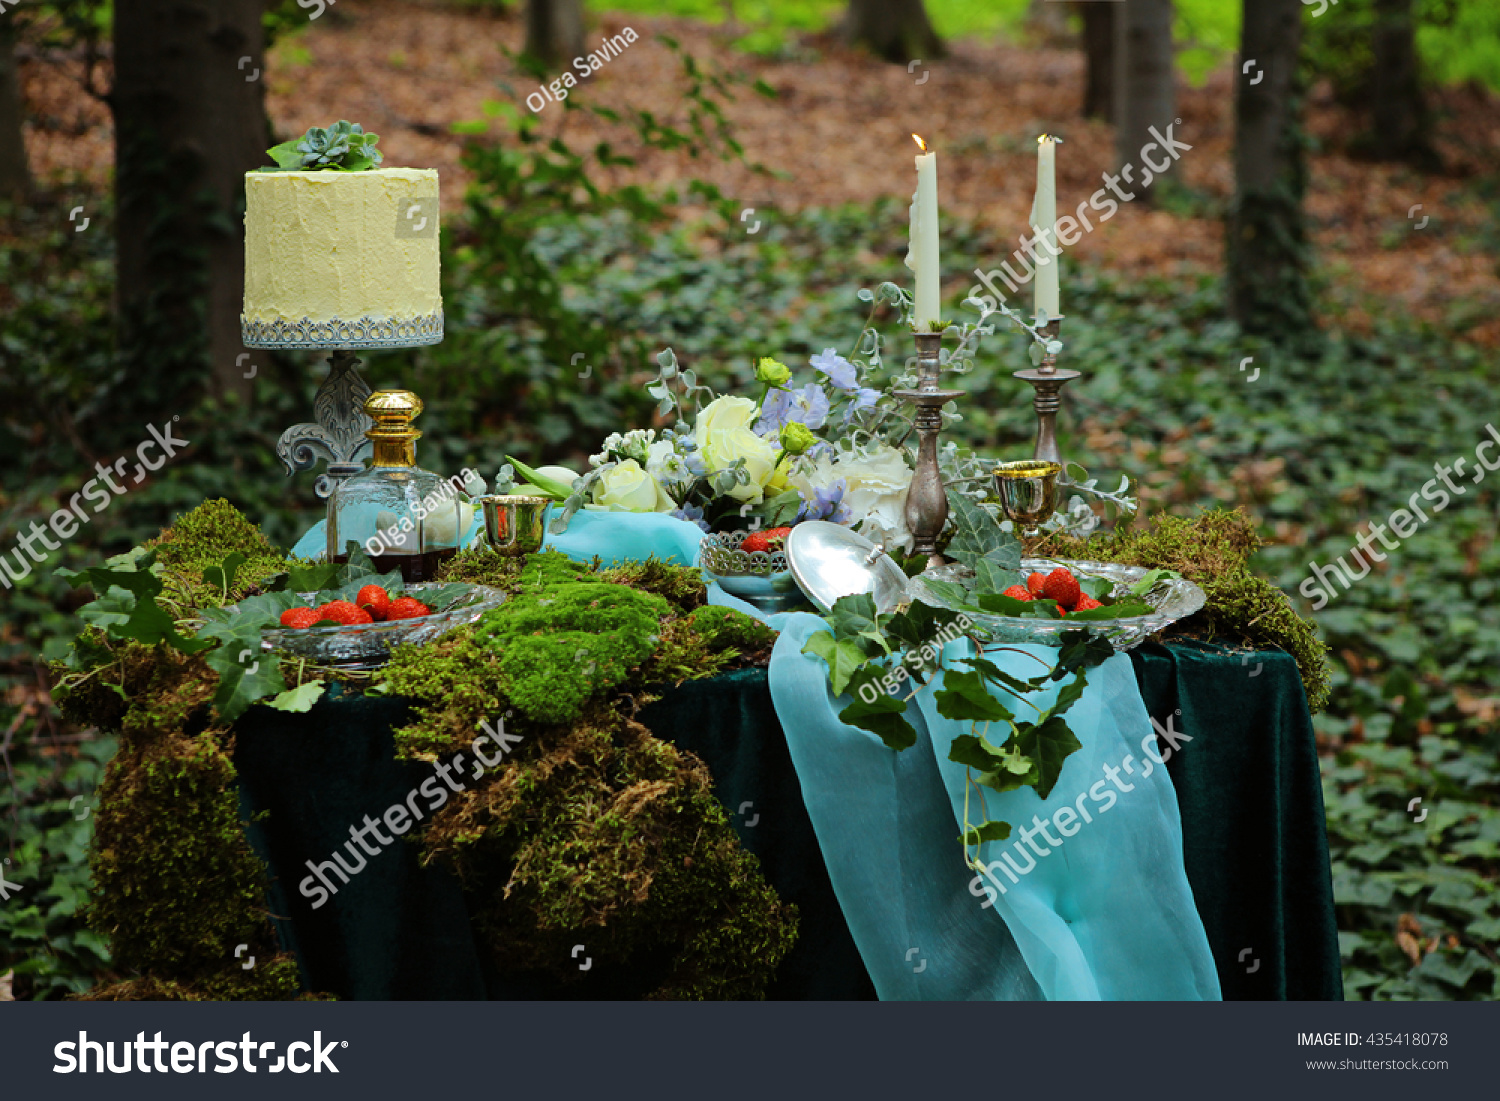 Enchanted forest theme wedding decoration plate stock photo enchanted forest theme wedding decoration plate on the moss candlesstrawberry flowers junglespirit Image collections